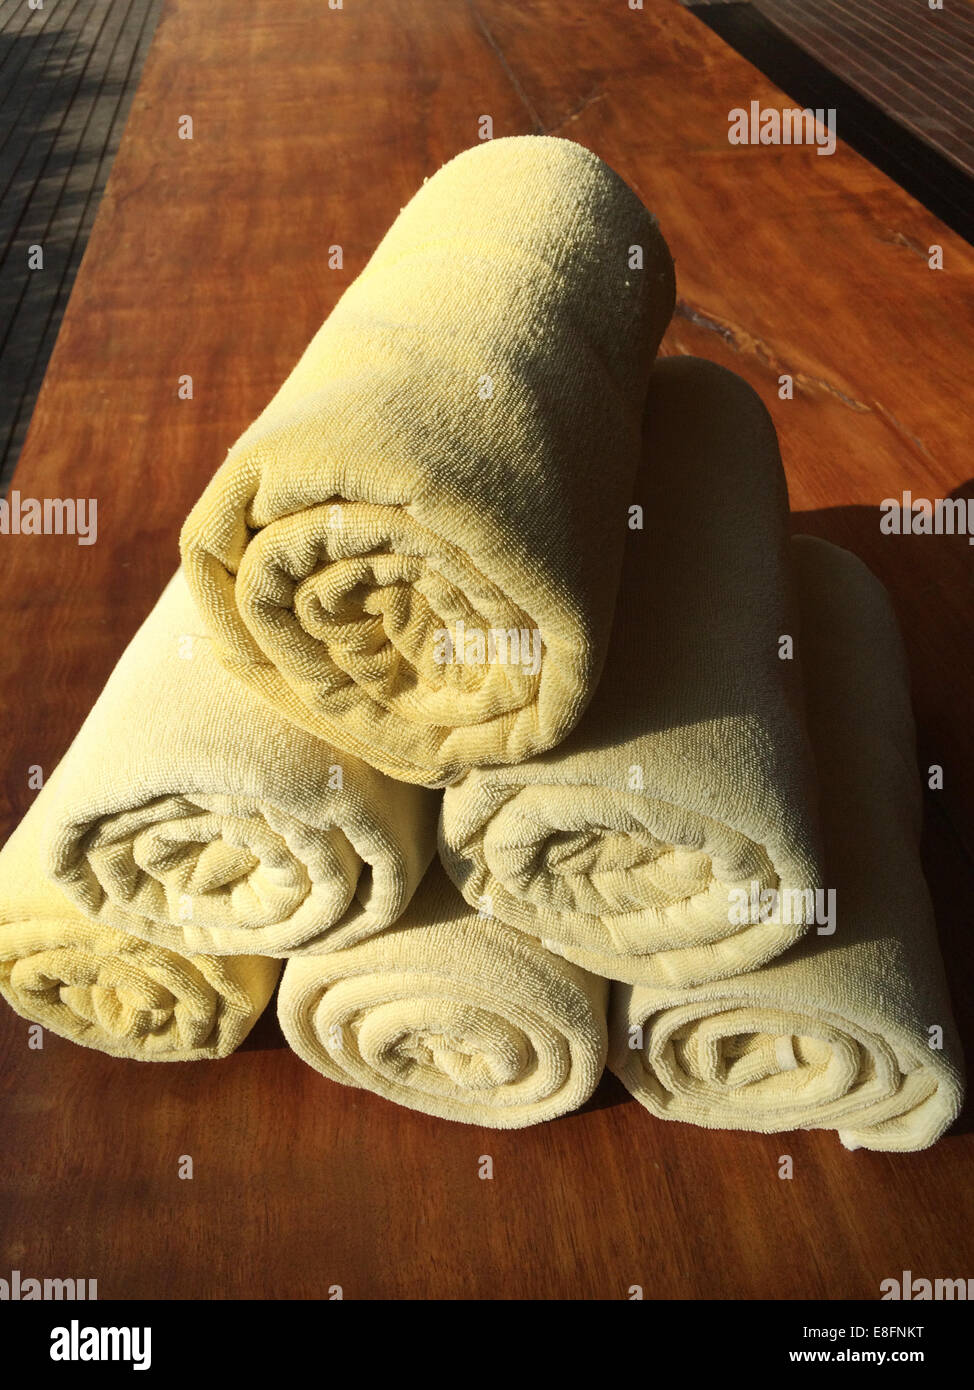 Rolled towels on wooden table - Stock Image